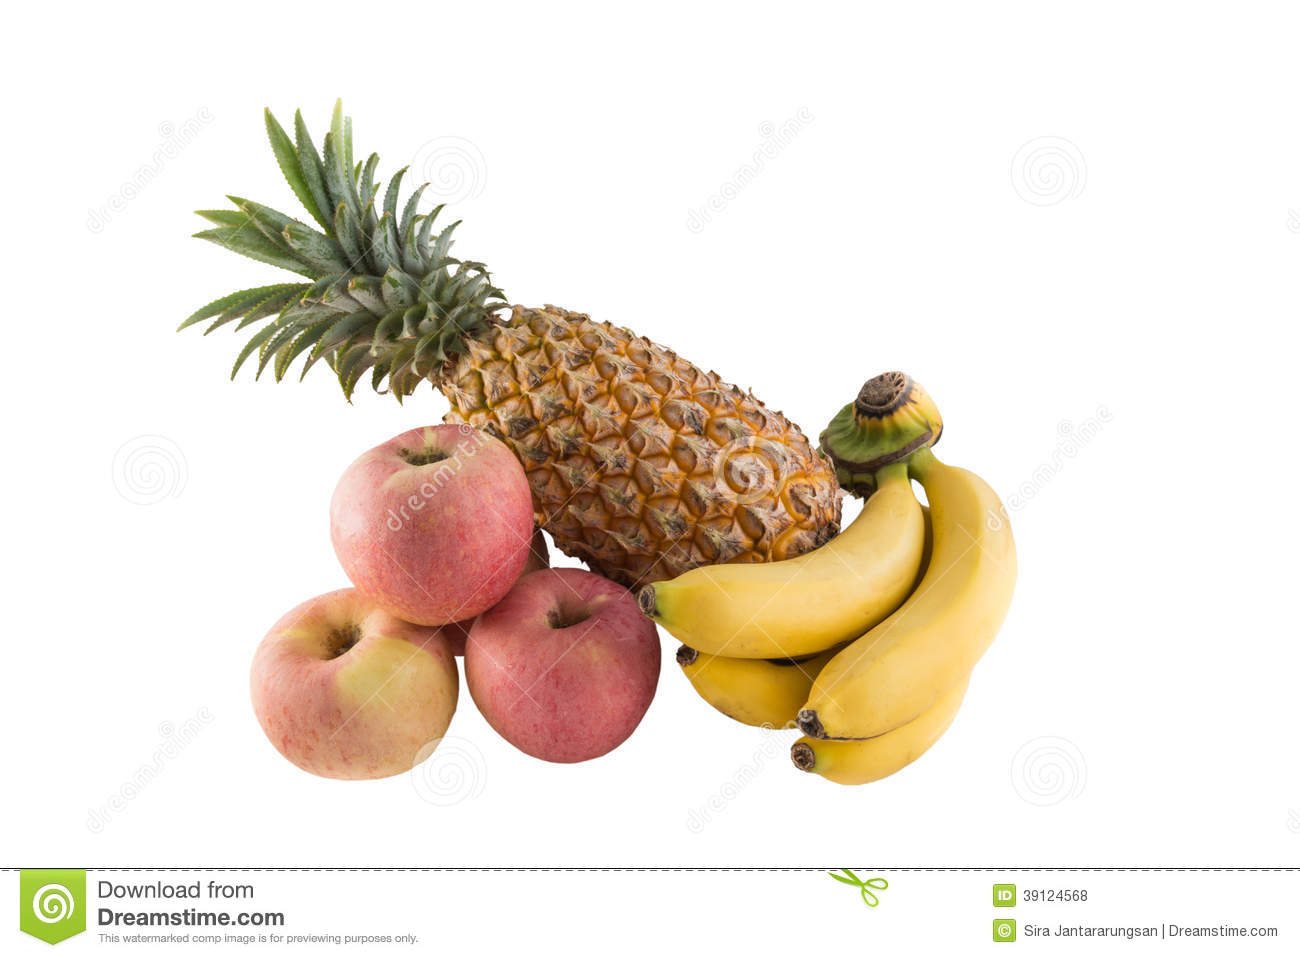 Amazing Wallpaper Macbook Pineapple - apple-banana-pineapple-isolated-white-background-39124568  Best Photo Reference_628957.jpg